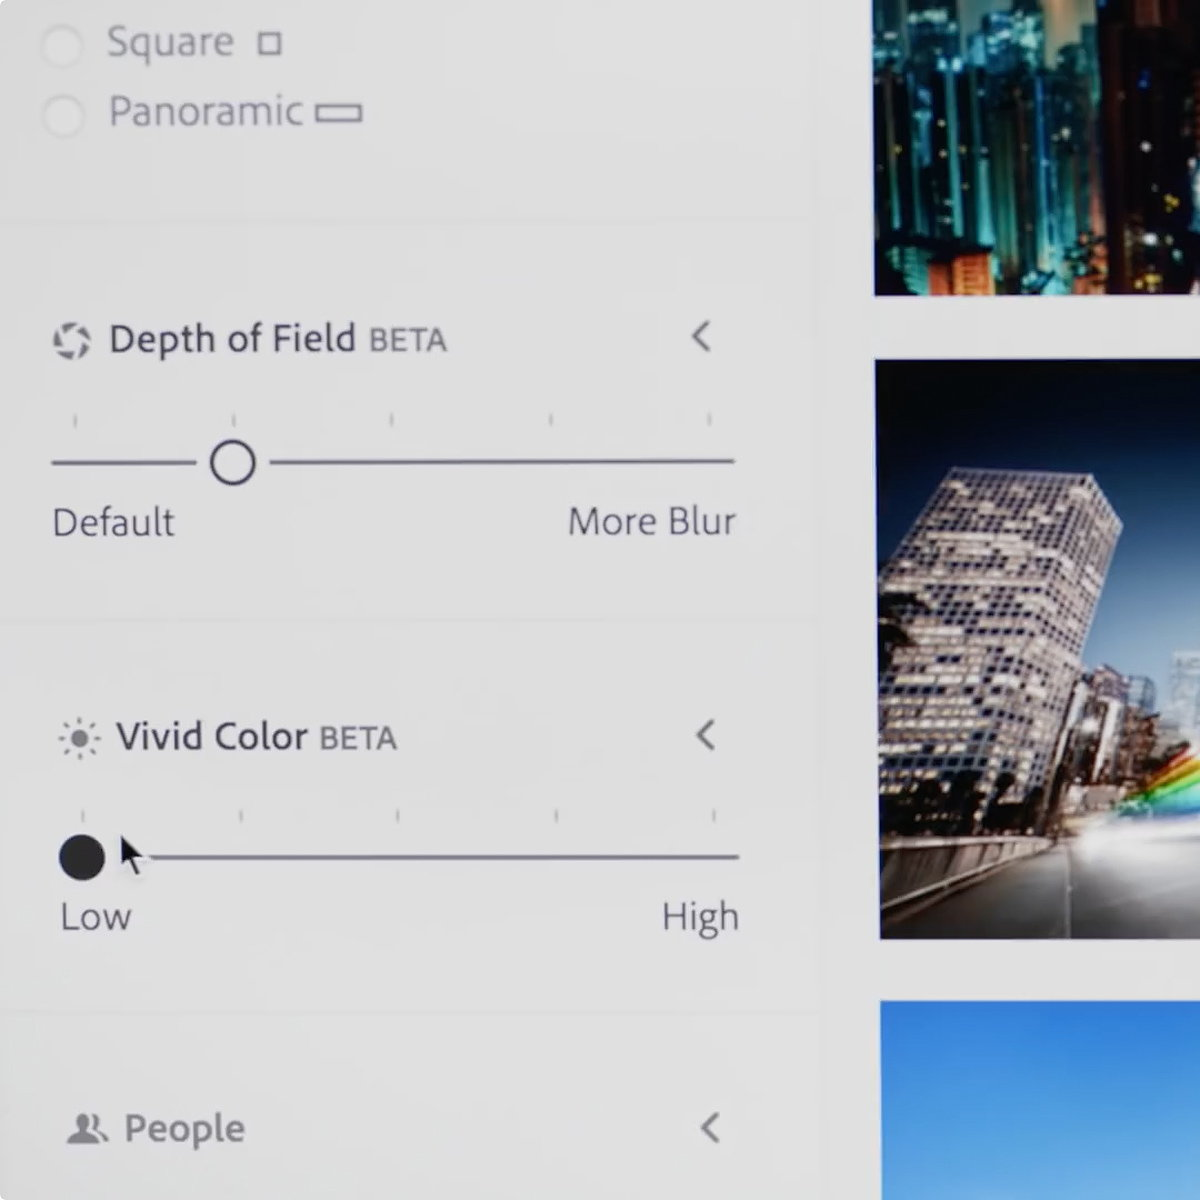 New Aesthetic Filters Let Designers Search Adobe Stock Images Using Attributes